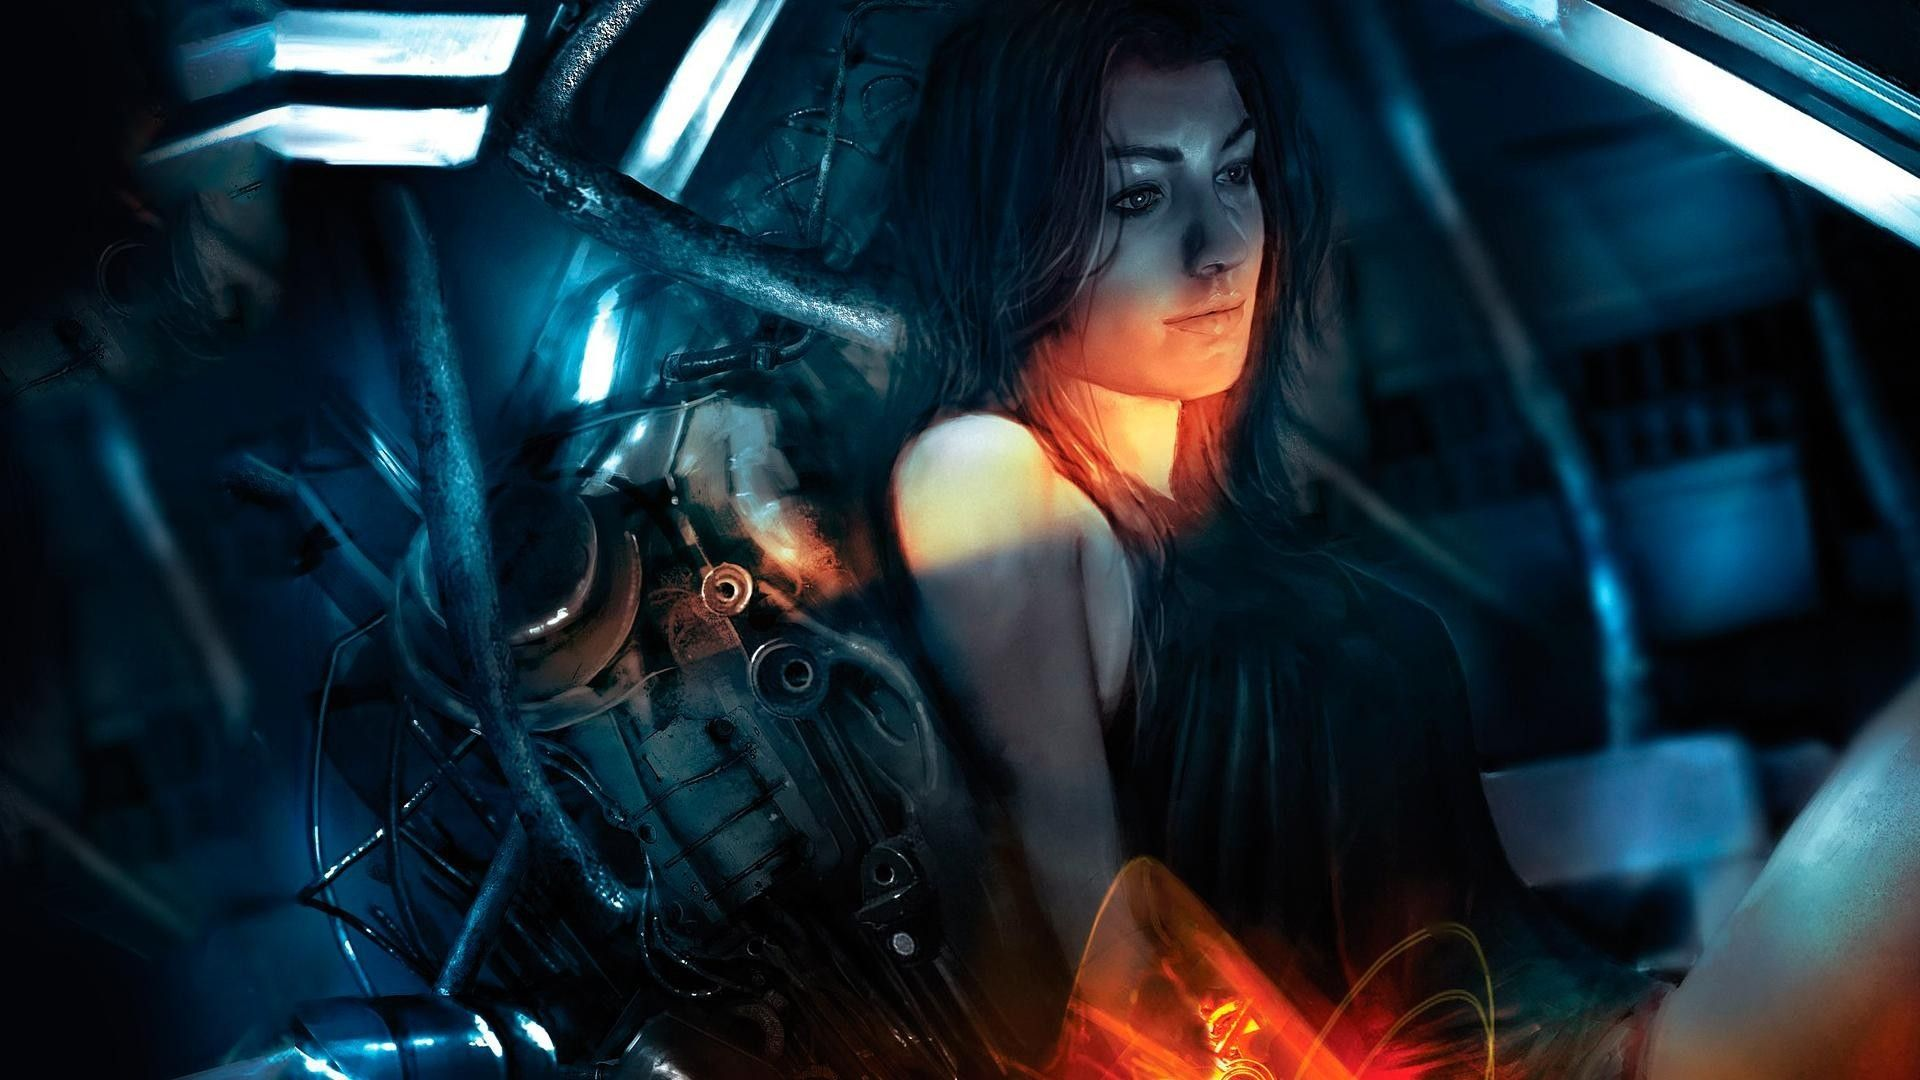 miranda lawson wallpaper by rendereffect dan mass effect fan art hd wallpapers pinterest miranda lawson and wallpaper